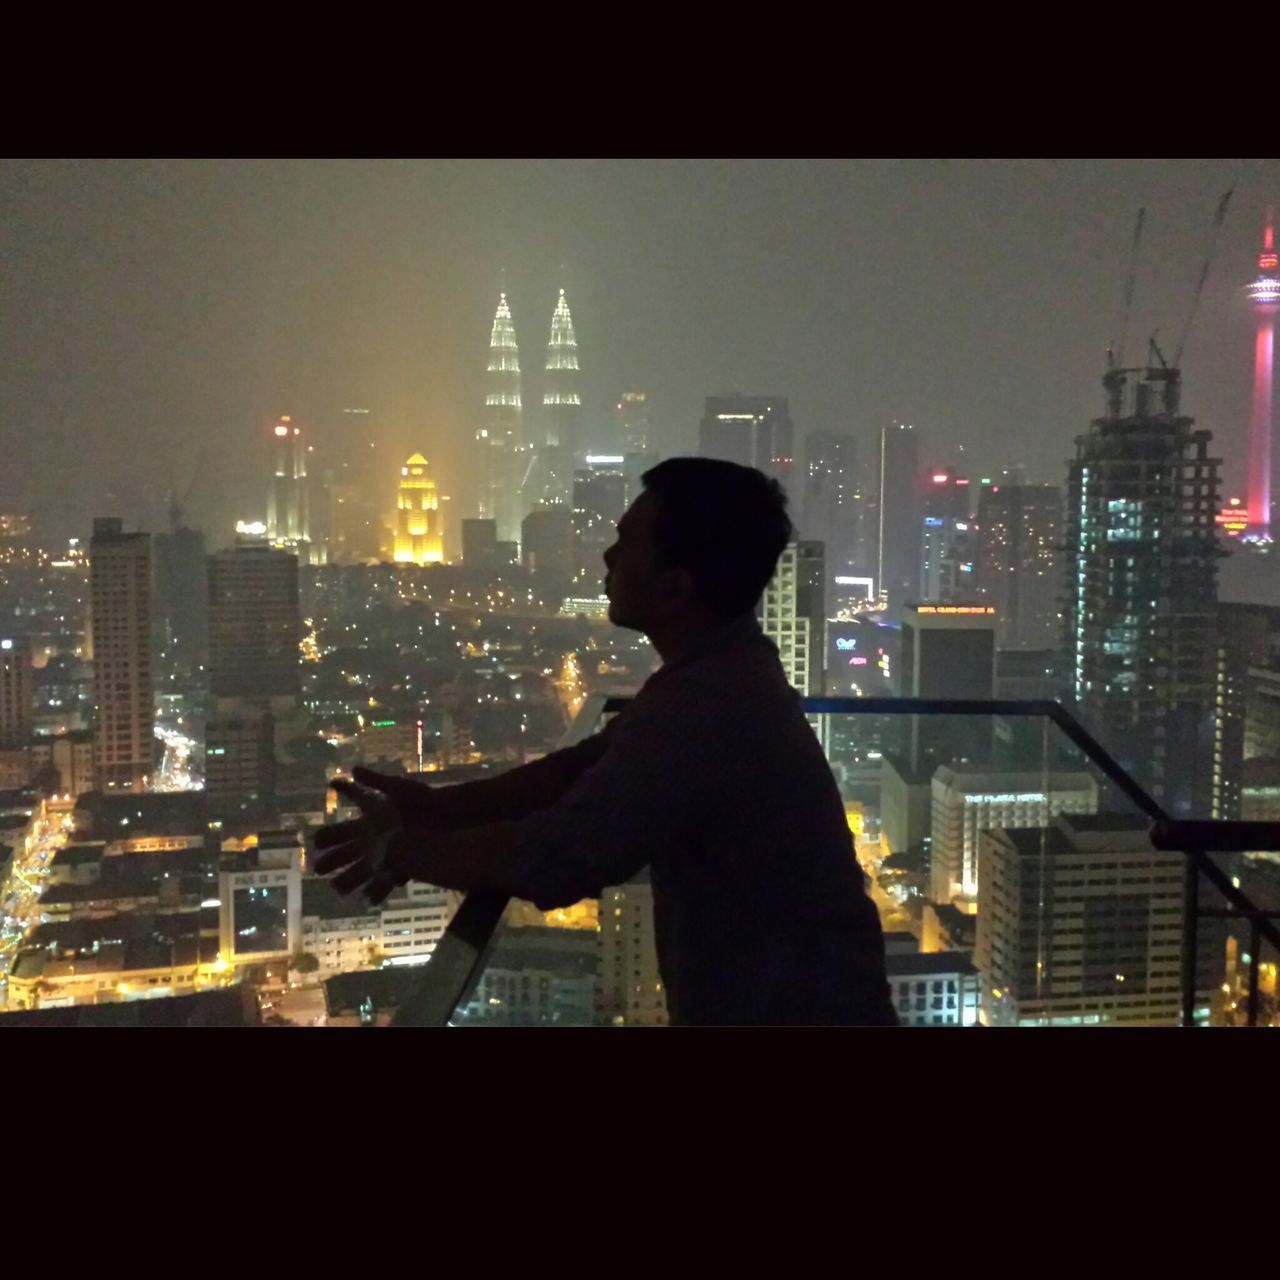 city, cityscape, architecture, skyscraper, building exterior, built structure, real people, illuminated, city life, night, one person, men, urban skyline, silhouette, modern, lifestyles, side view, travel destinations, standing, sky, outdoors